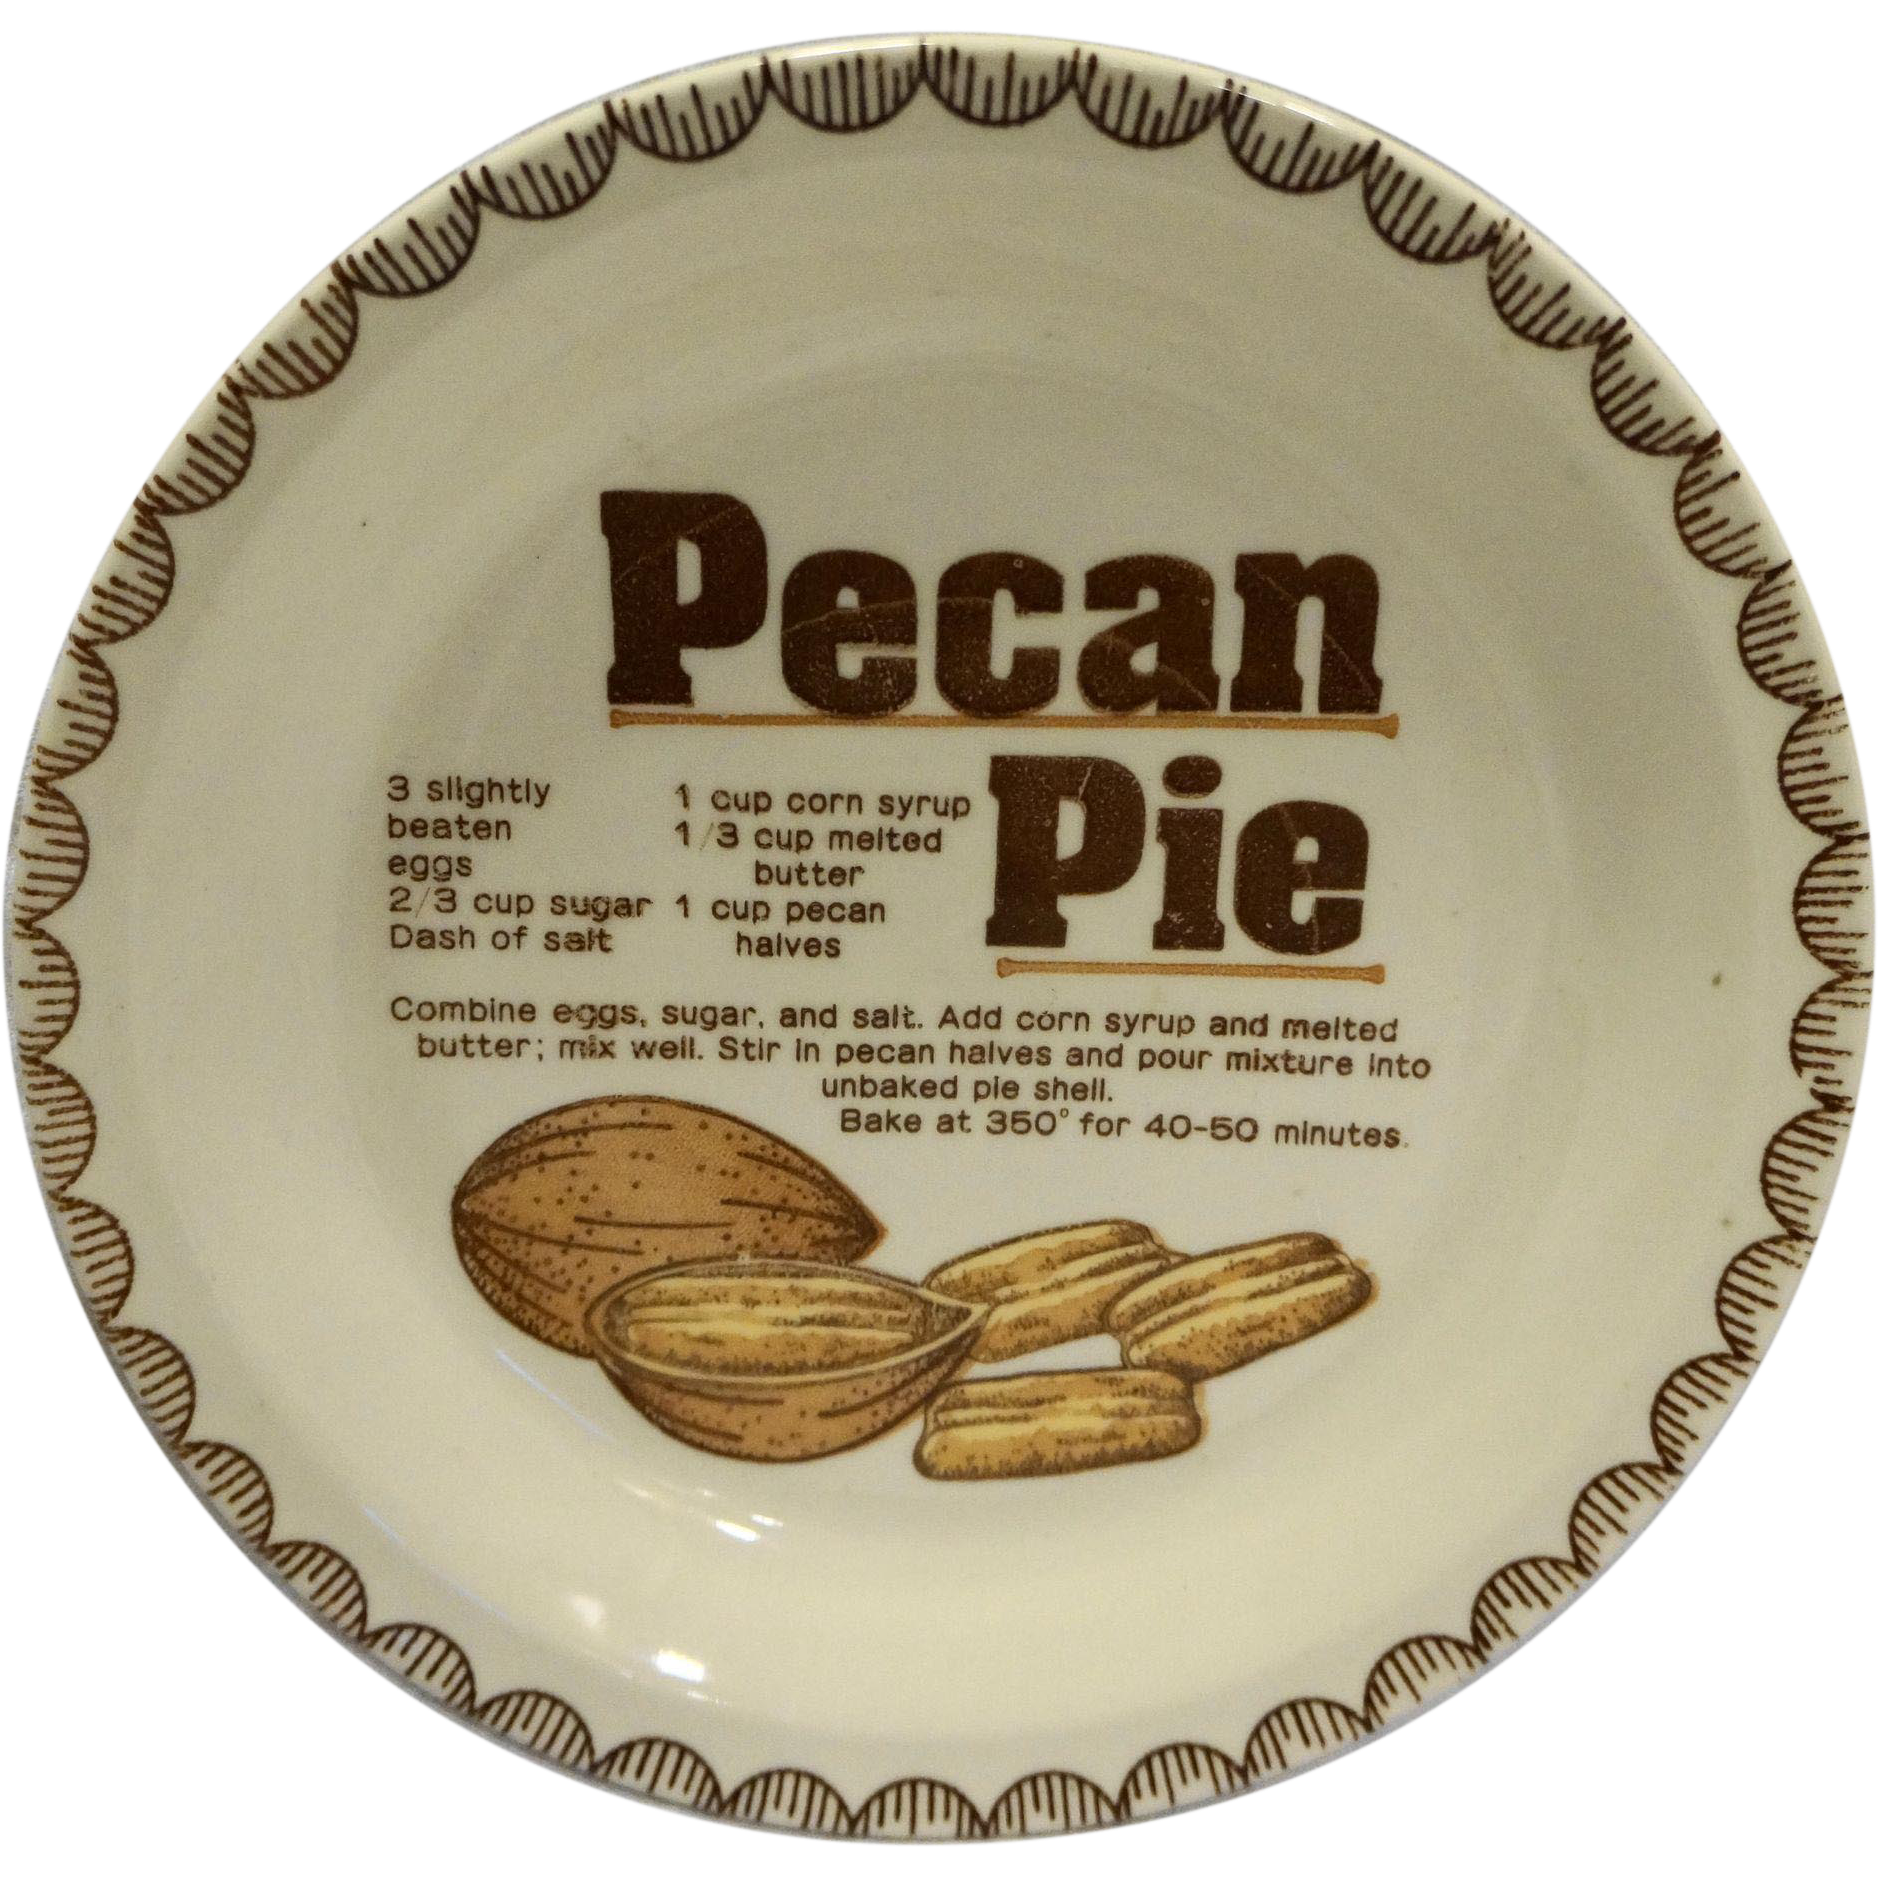 Pecan Pie Recipe Pie Plate/Dish Ceramic Vintage Mount Clemens Pottery Japan